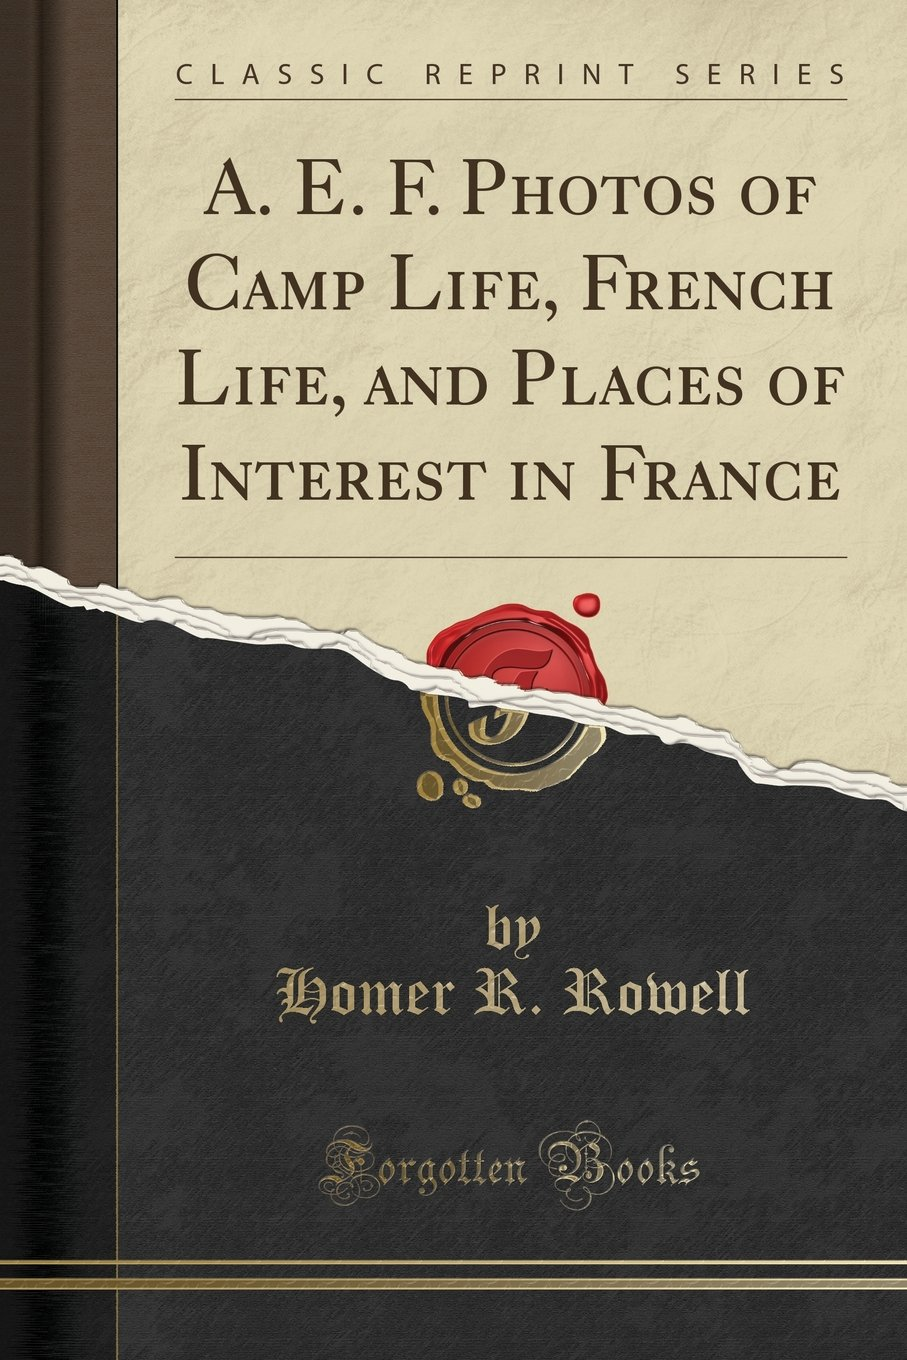 Download A. E. F. Photos of Camp Life, French Life, and Places of Interest in France (Classic Reprint) ebook